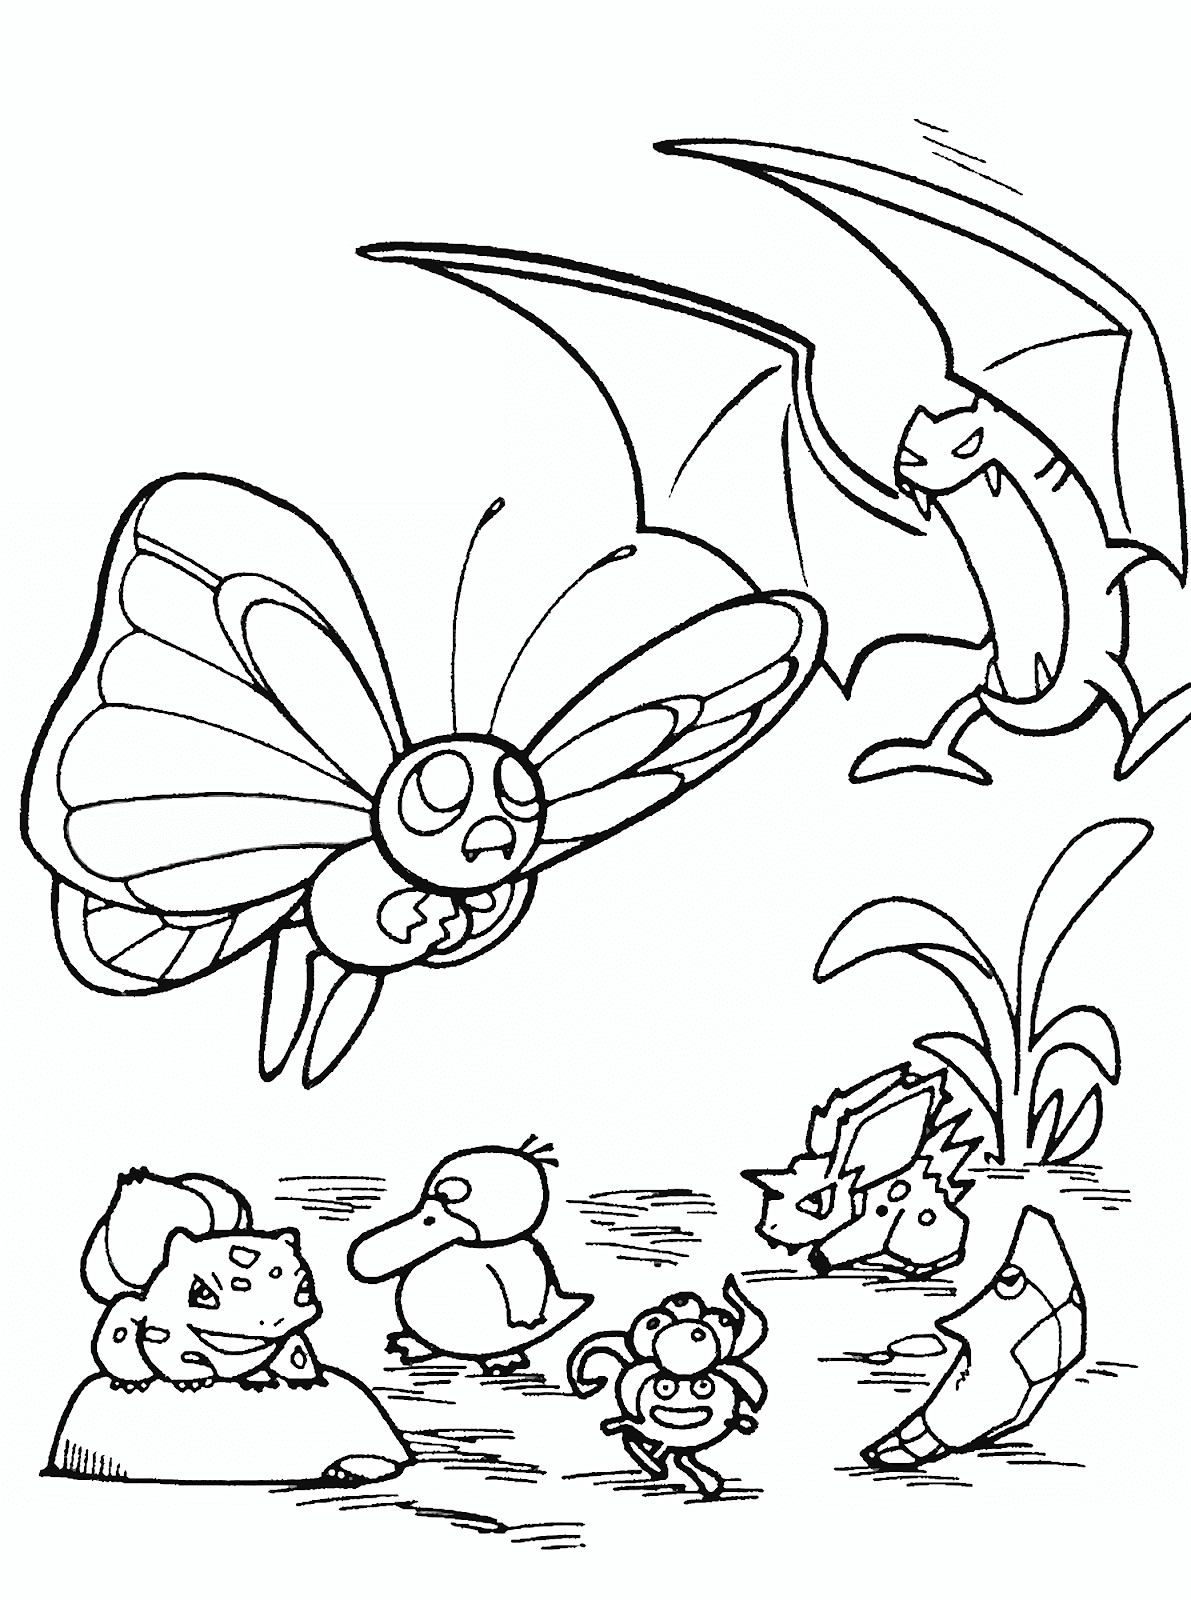 Butterfree Coloring Pages Pokemon Coloring Pages Pokemon Coloring Star Coloring Pages